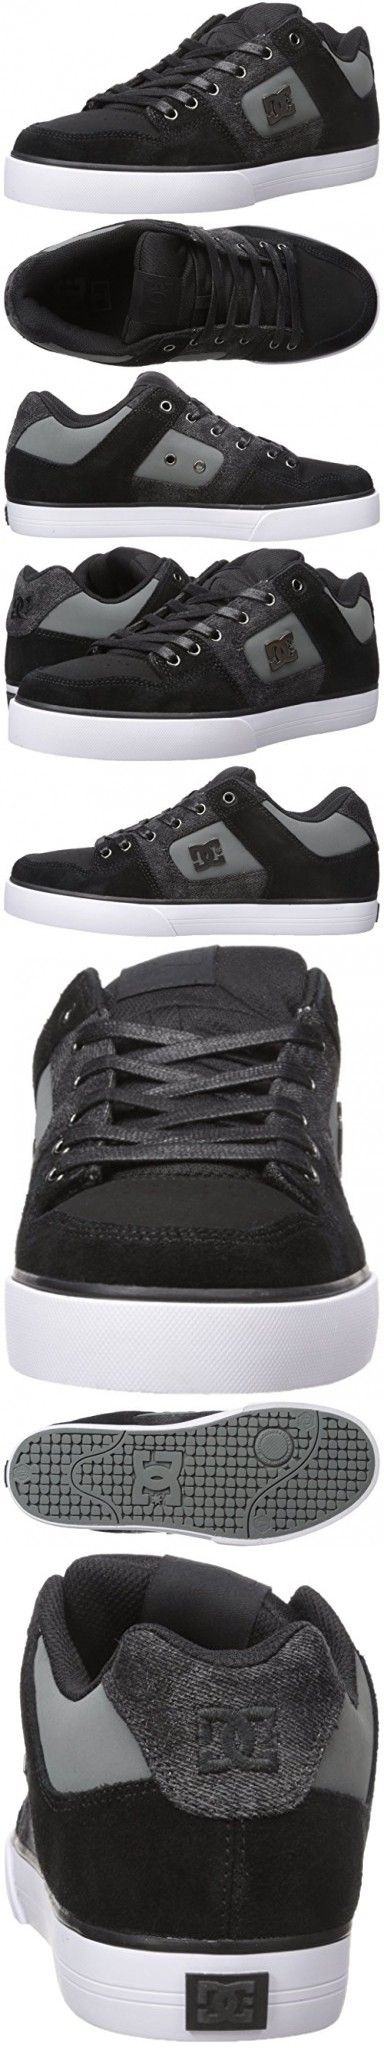 DC Red de Hombres SE, Black Destroy Wash, 9 D US